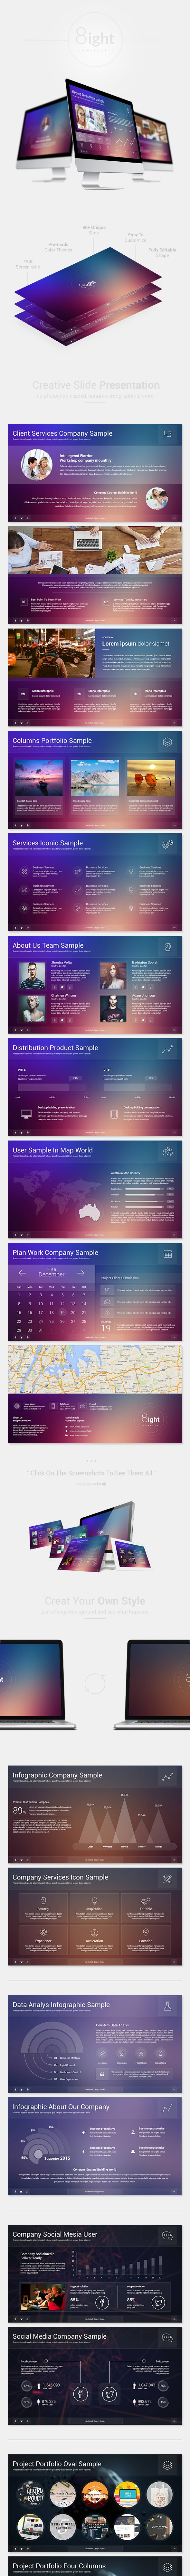 8ight Powerpoint - Creative PowerPoint Templates